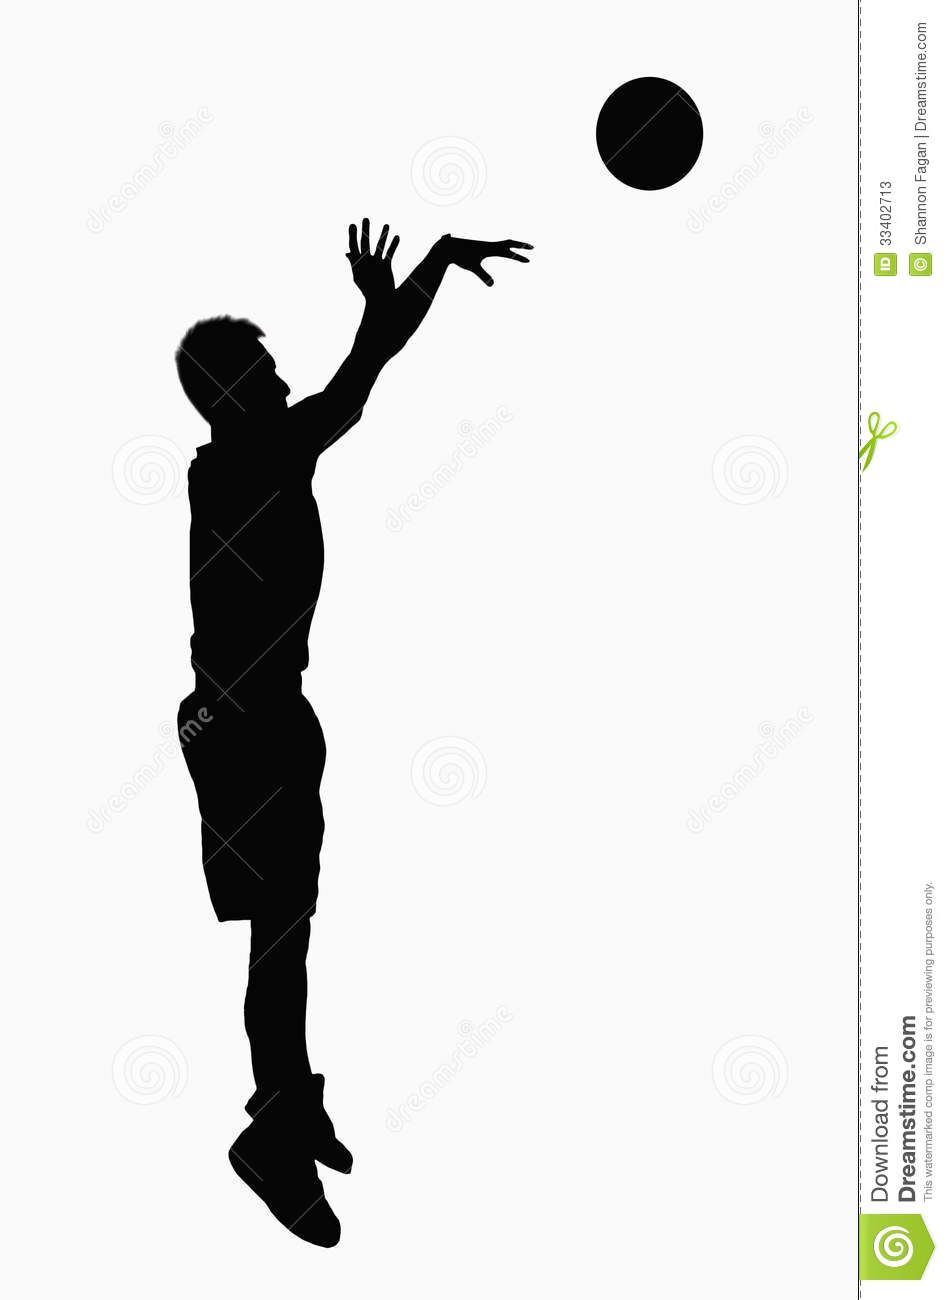 Basketball Shooter Silhouette Google Search Ball Drawing Silhouette Template Silhouette